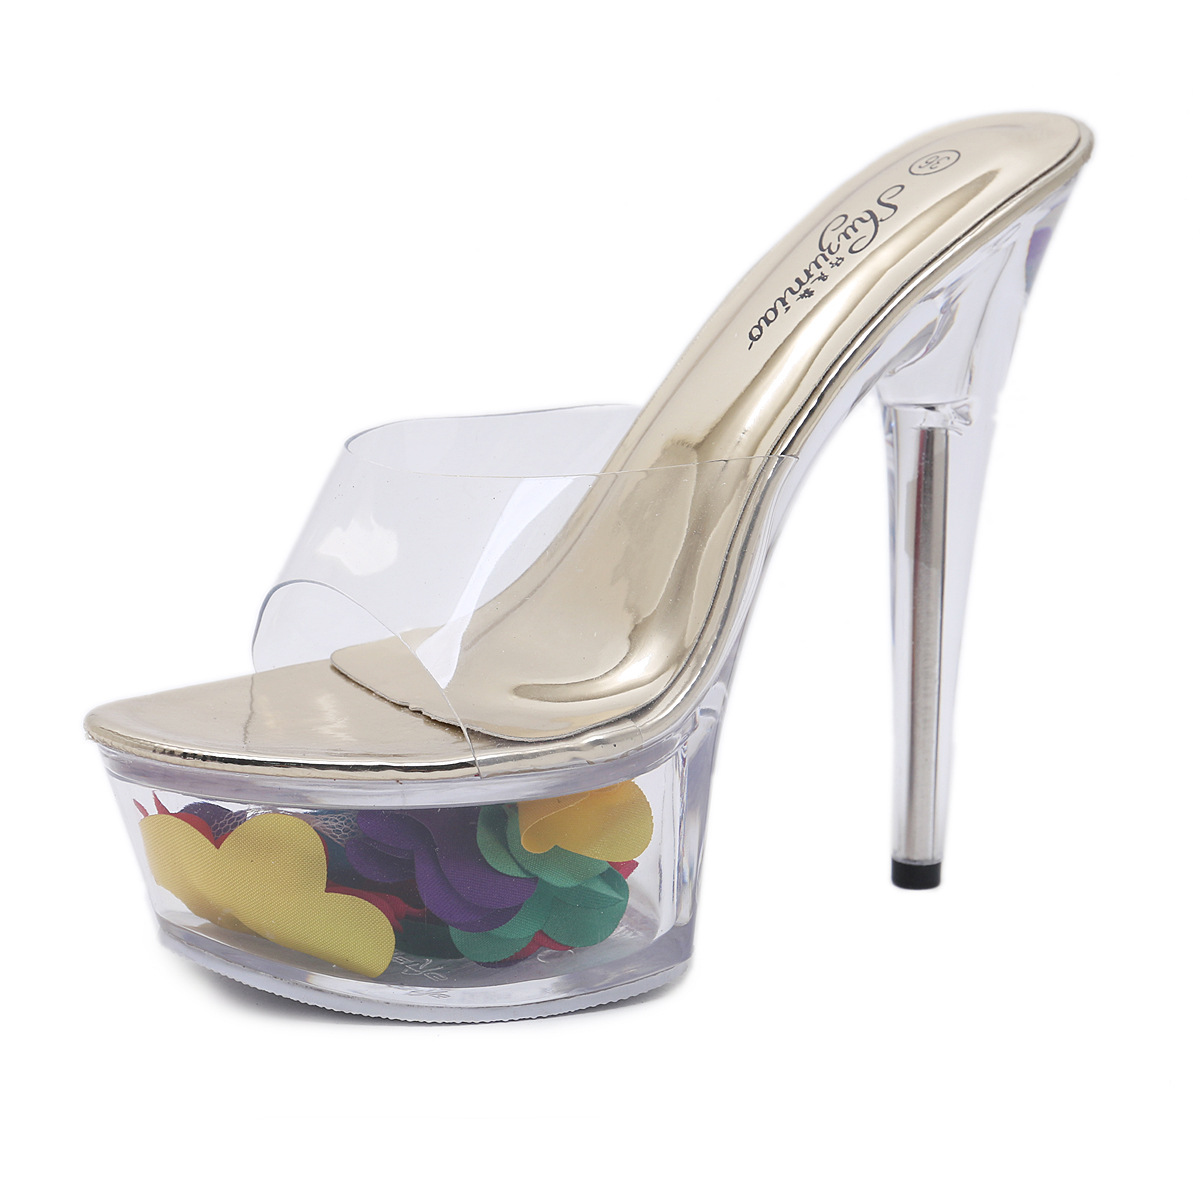 Women Platform Sandals 14cm High Heels Women Summer Transparent Shoes Slip-On Sexy Lady Stiletto Heels Platform Sandals Slippers xiaying smile new summer women sandals high square heels pumps fashion platform shoes casual lady mature style slip on shoes